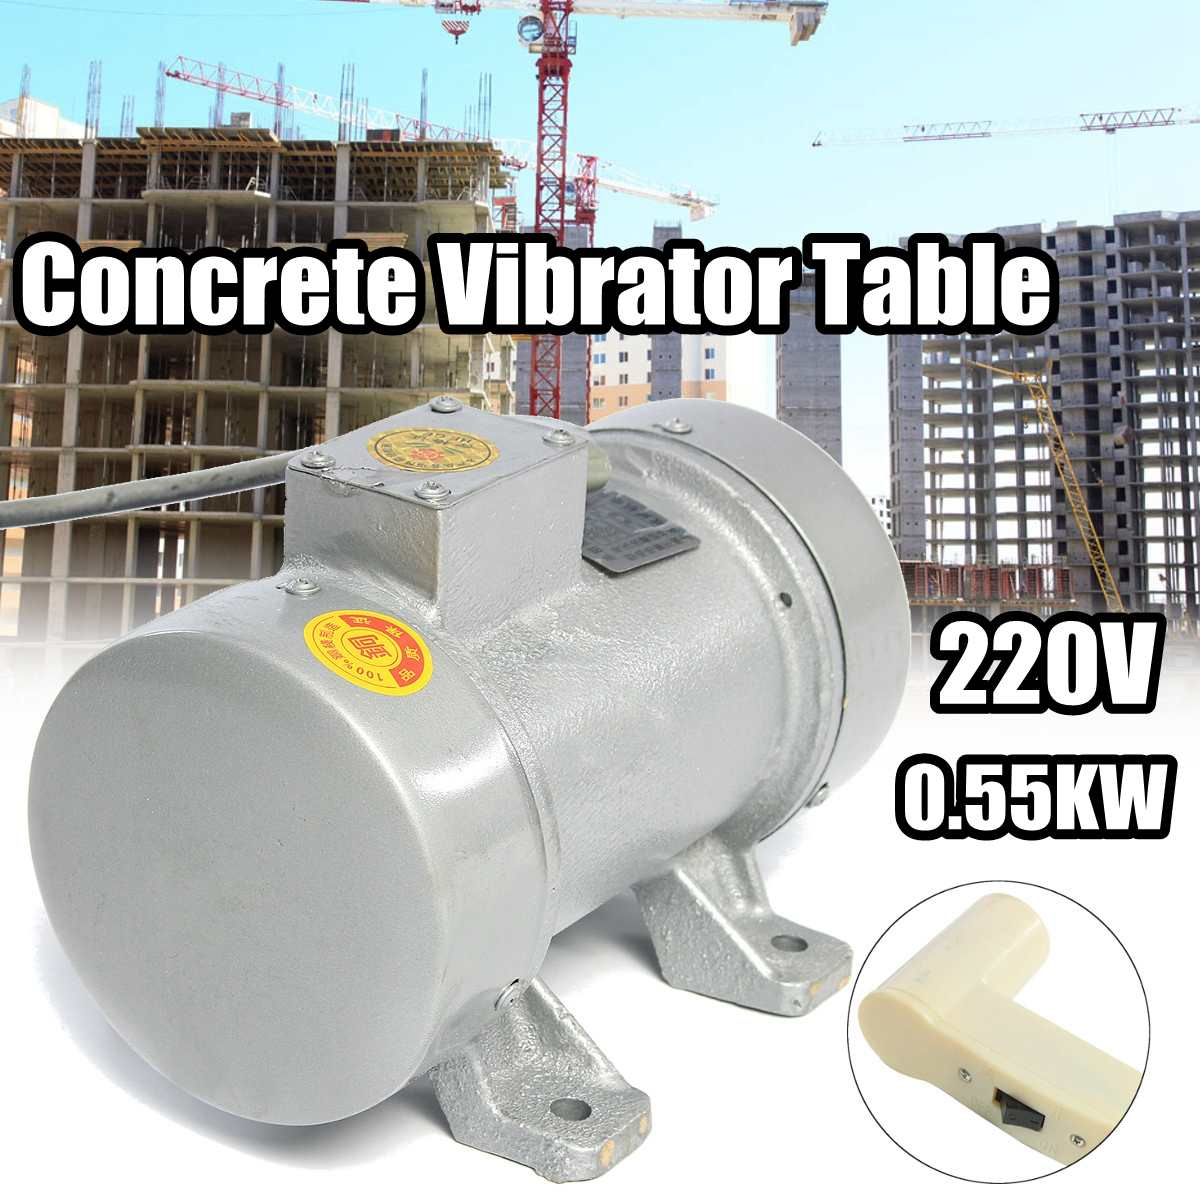 Drillpro 220V 550W Concrete Vibrator Motor Single phase copper core For Concrete Vibrator Table ToolsDrillpro 220V 550W Concrete Vibrator Motor Single phase copper core For Concrete Vibrator Table Tools